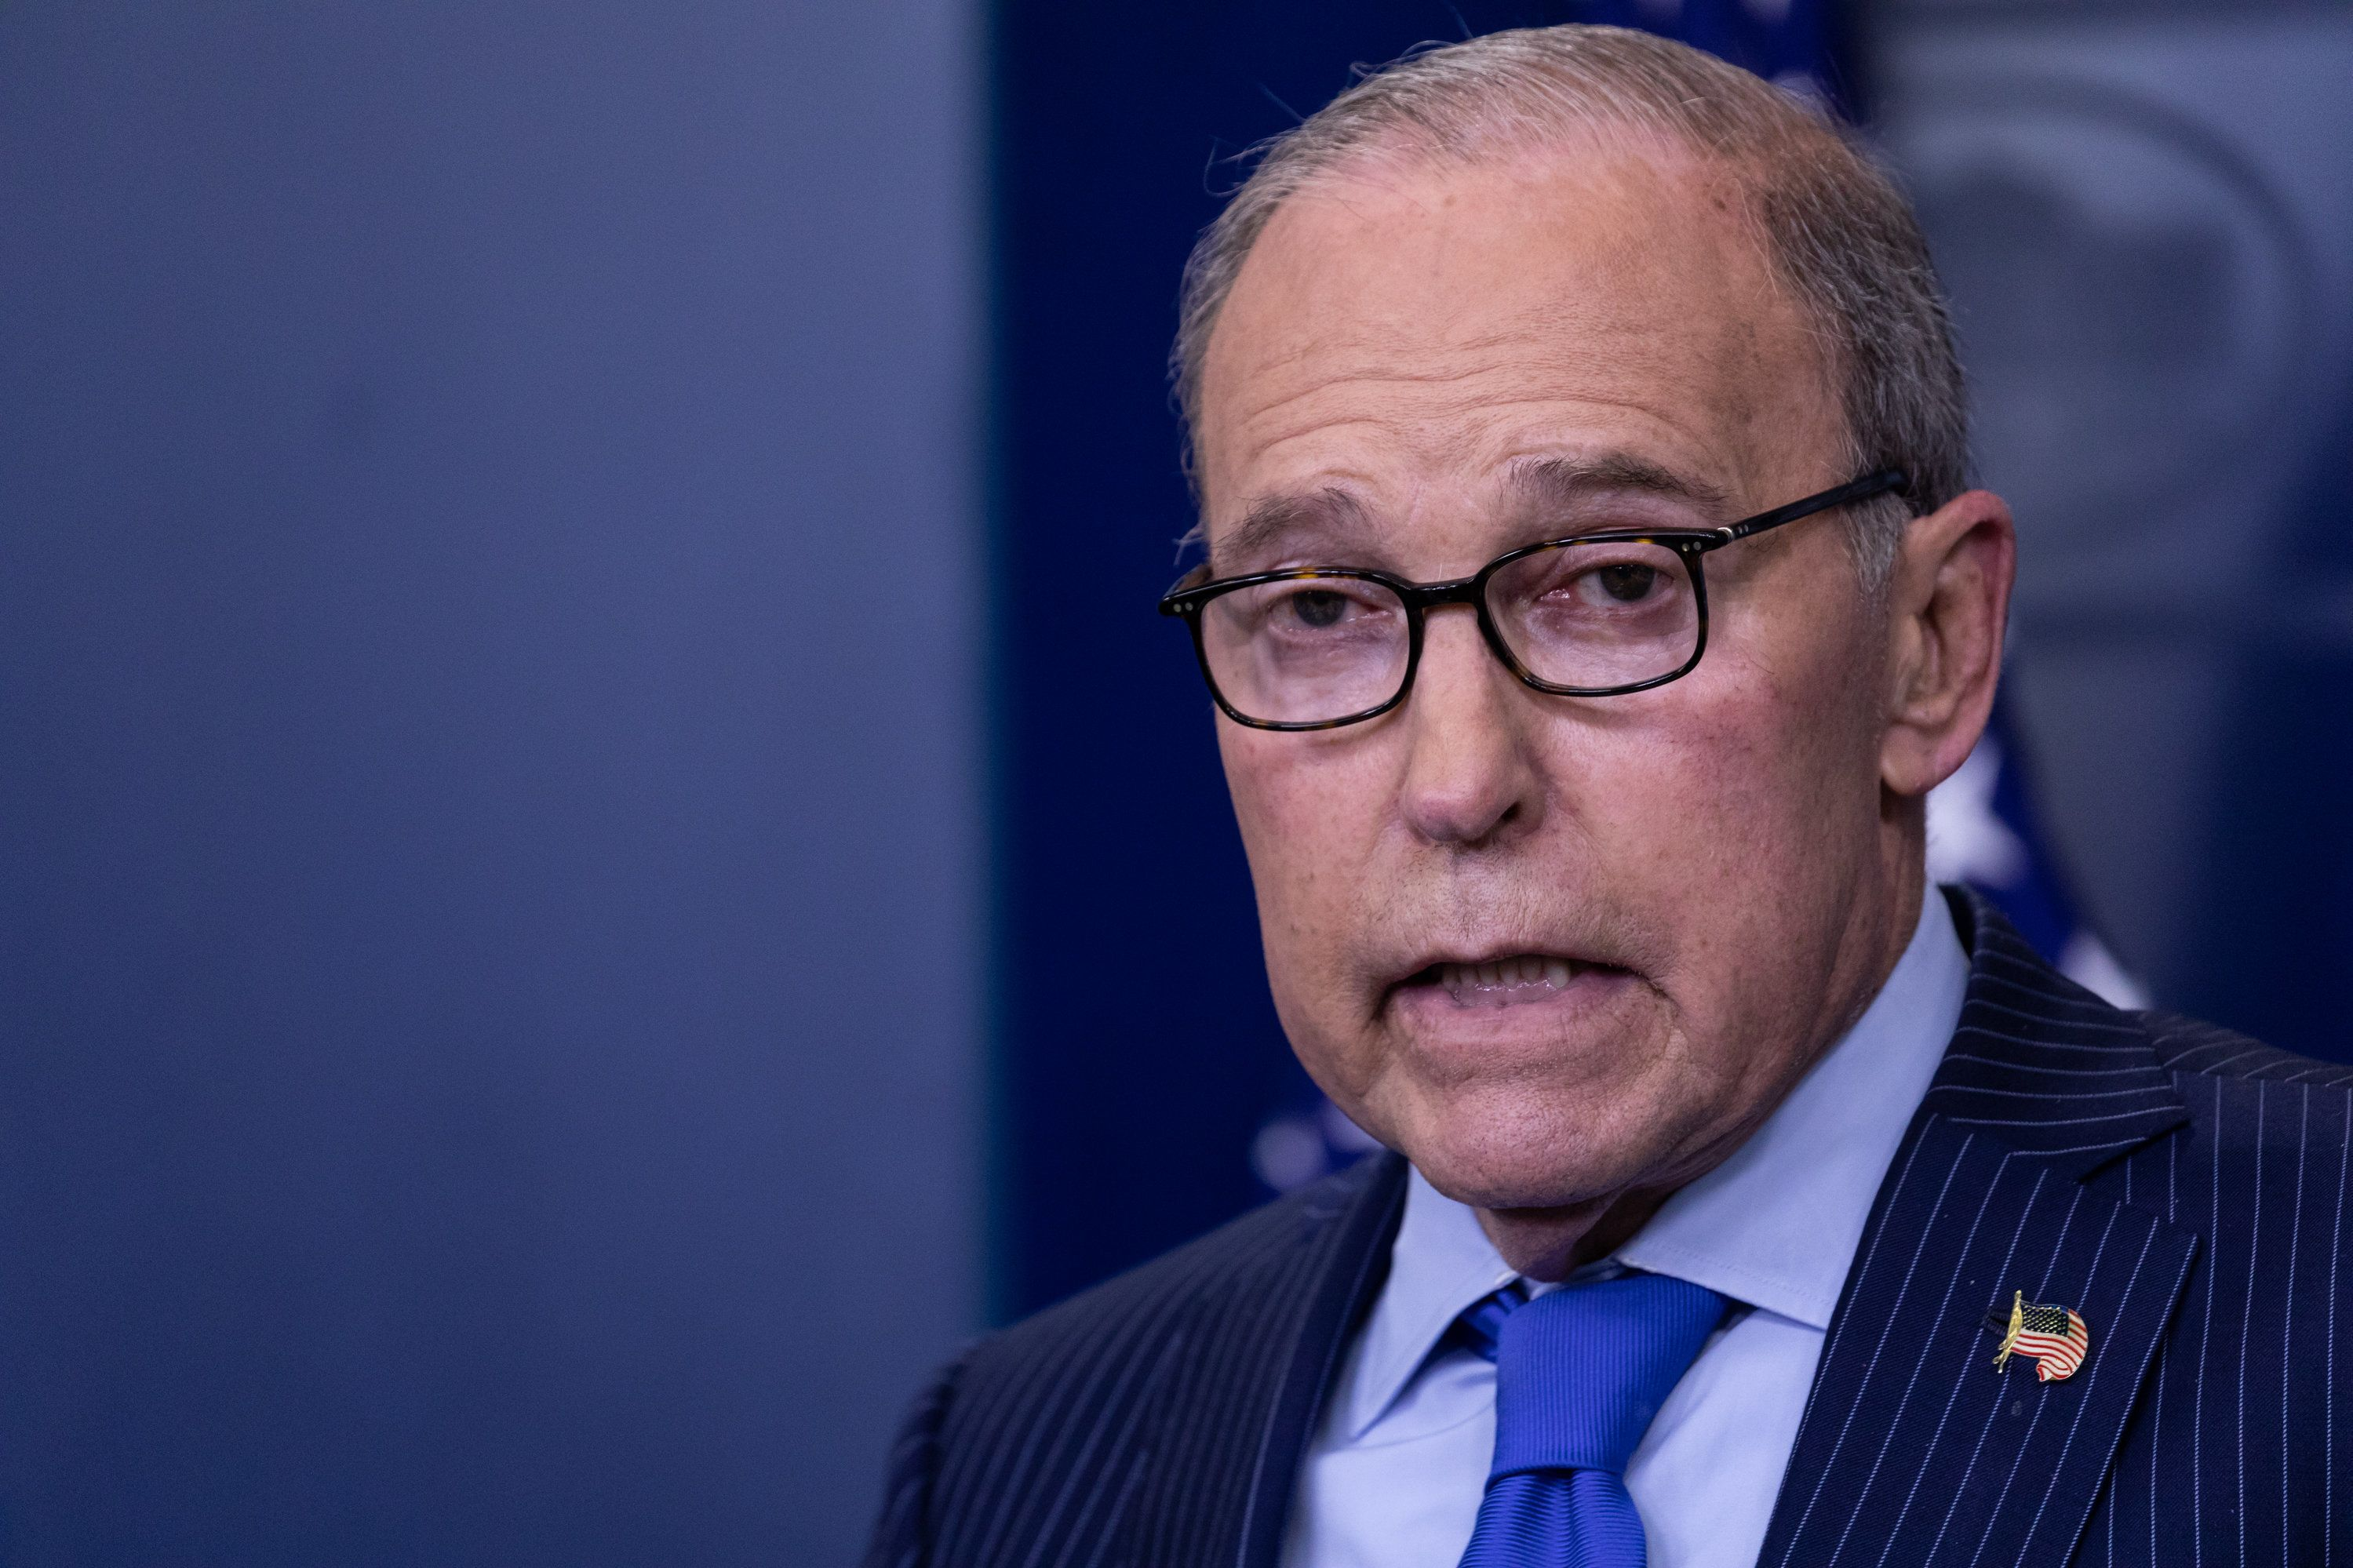 Larry Kudlow, NEC Director and Assistant to U.S. President Donald Trump for Economic Policy, conducts a press briefing on the G7 Summit in the James S. Brady Press Briefing Room of the White House, on Wednesday, June 6, 2018. (Photo by Cheriss May/NurPhoto via Getty Images)